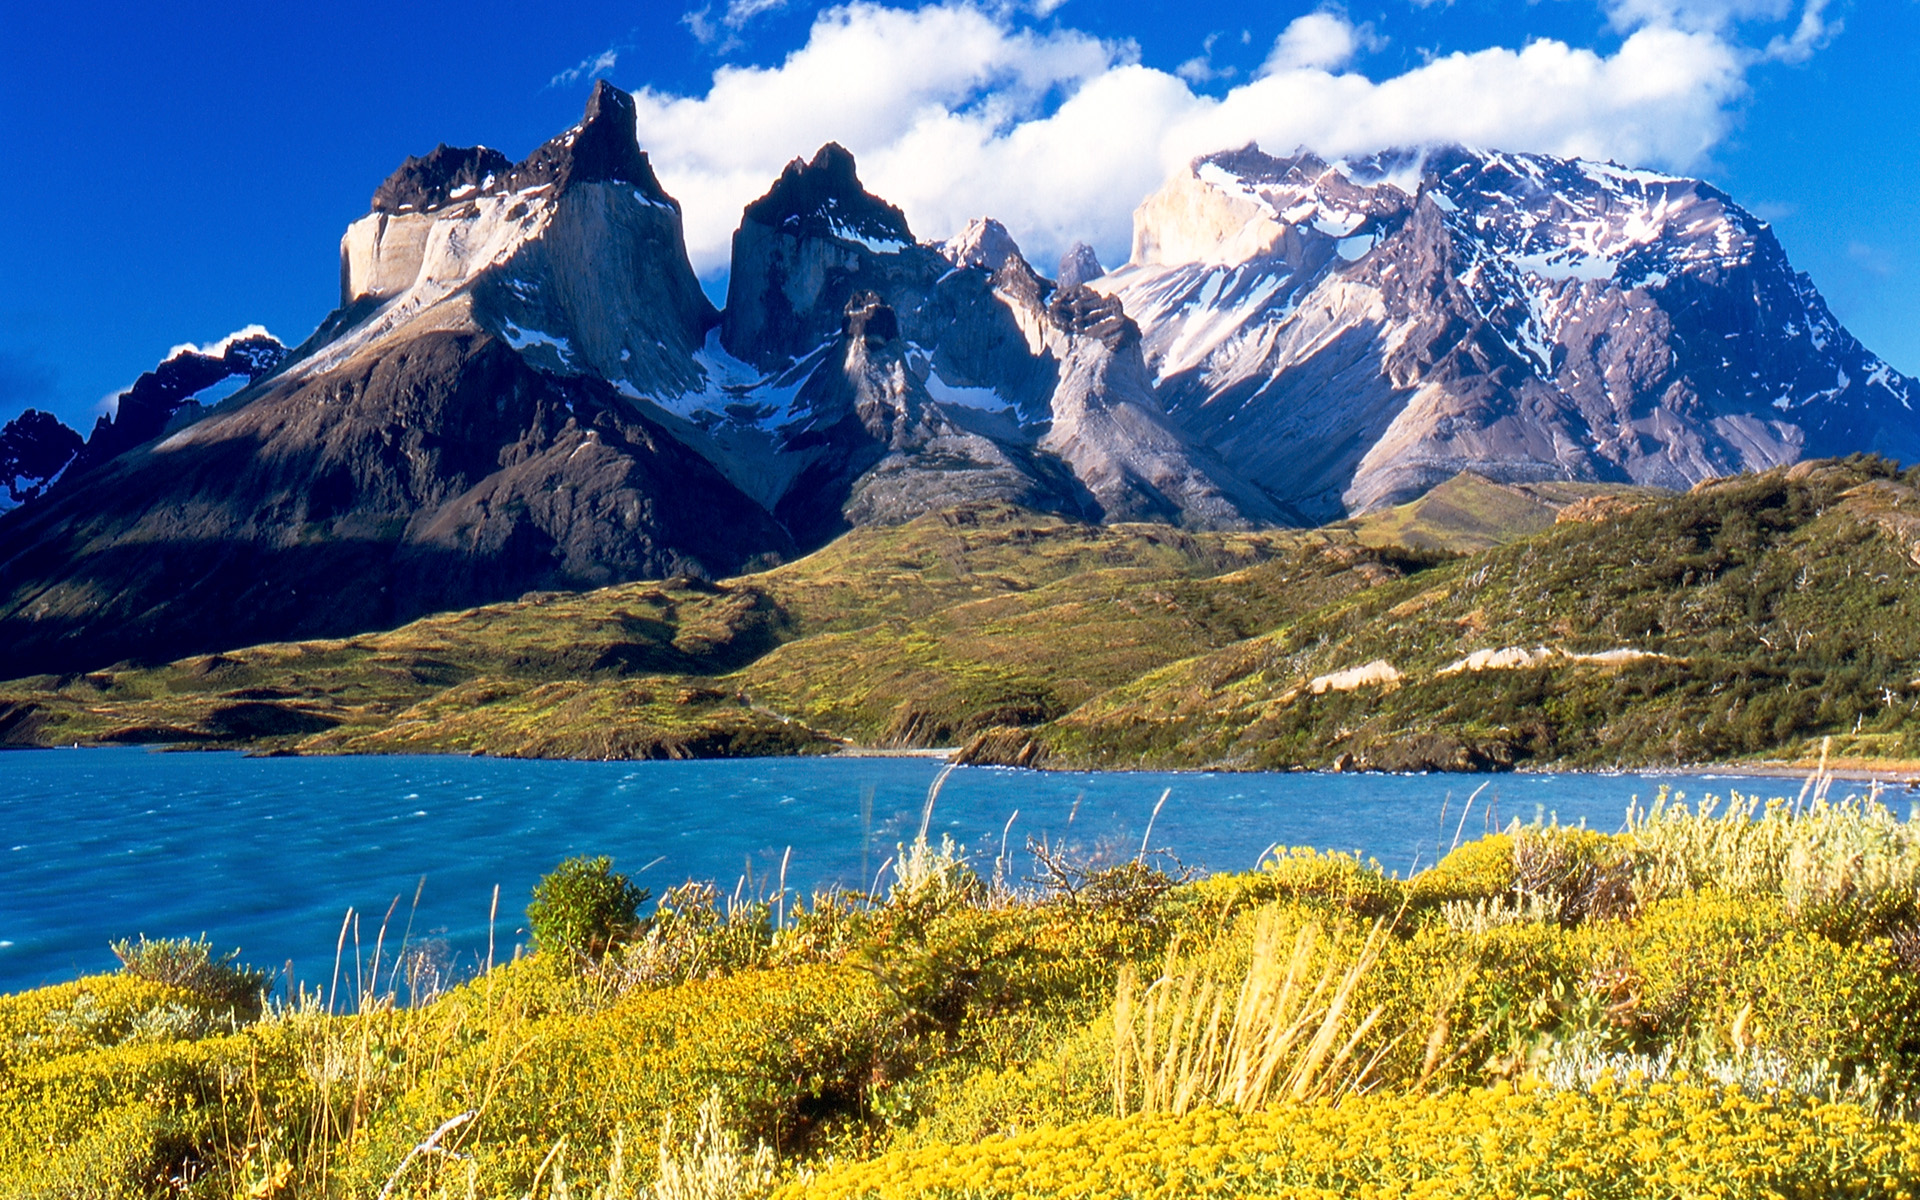 park-patagonia-argentina-wallpapers-05